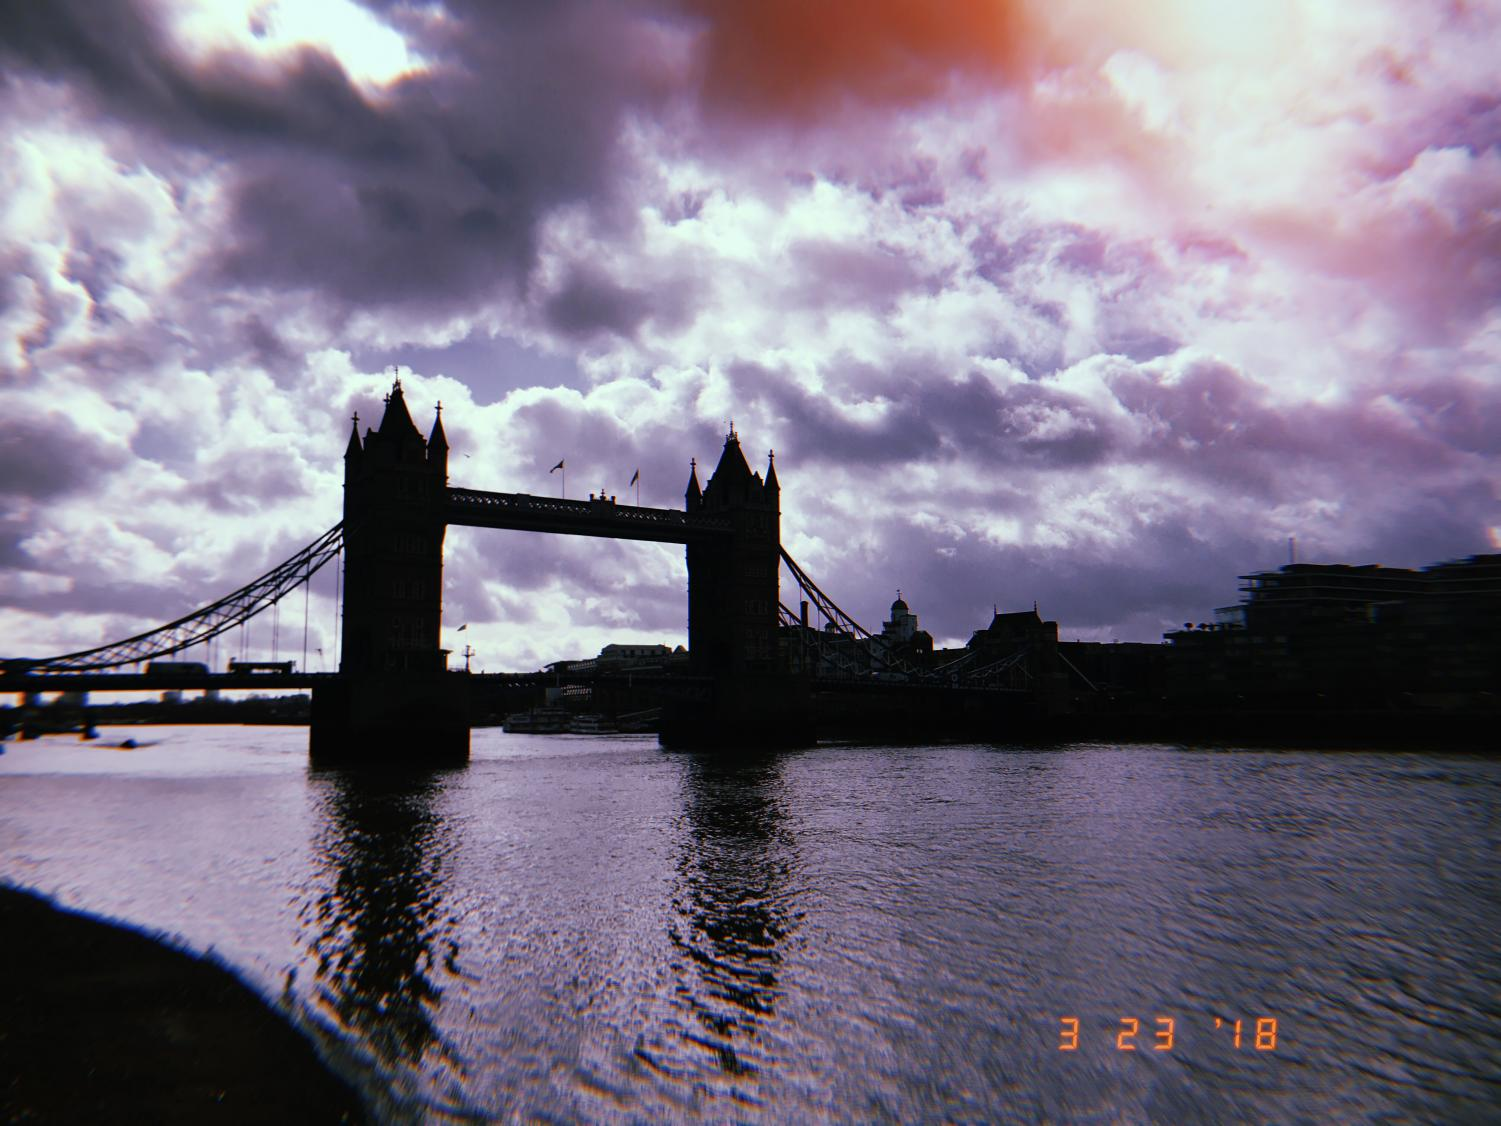 Commonly+mistaken+as+the+London+Bridge%2C+what+is+actually+called+the+Tower+Bridge+stands+tall+next+to+its+shorter+surrounding+bridges.+The+Tower+Bridge+sits+over+the+Thames+River%2C+connecting+the+historical+royal+half+of+the+city+to+the+%22commoner%22+side.